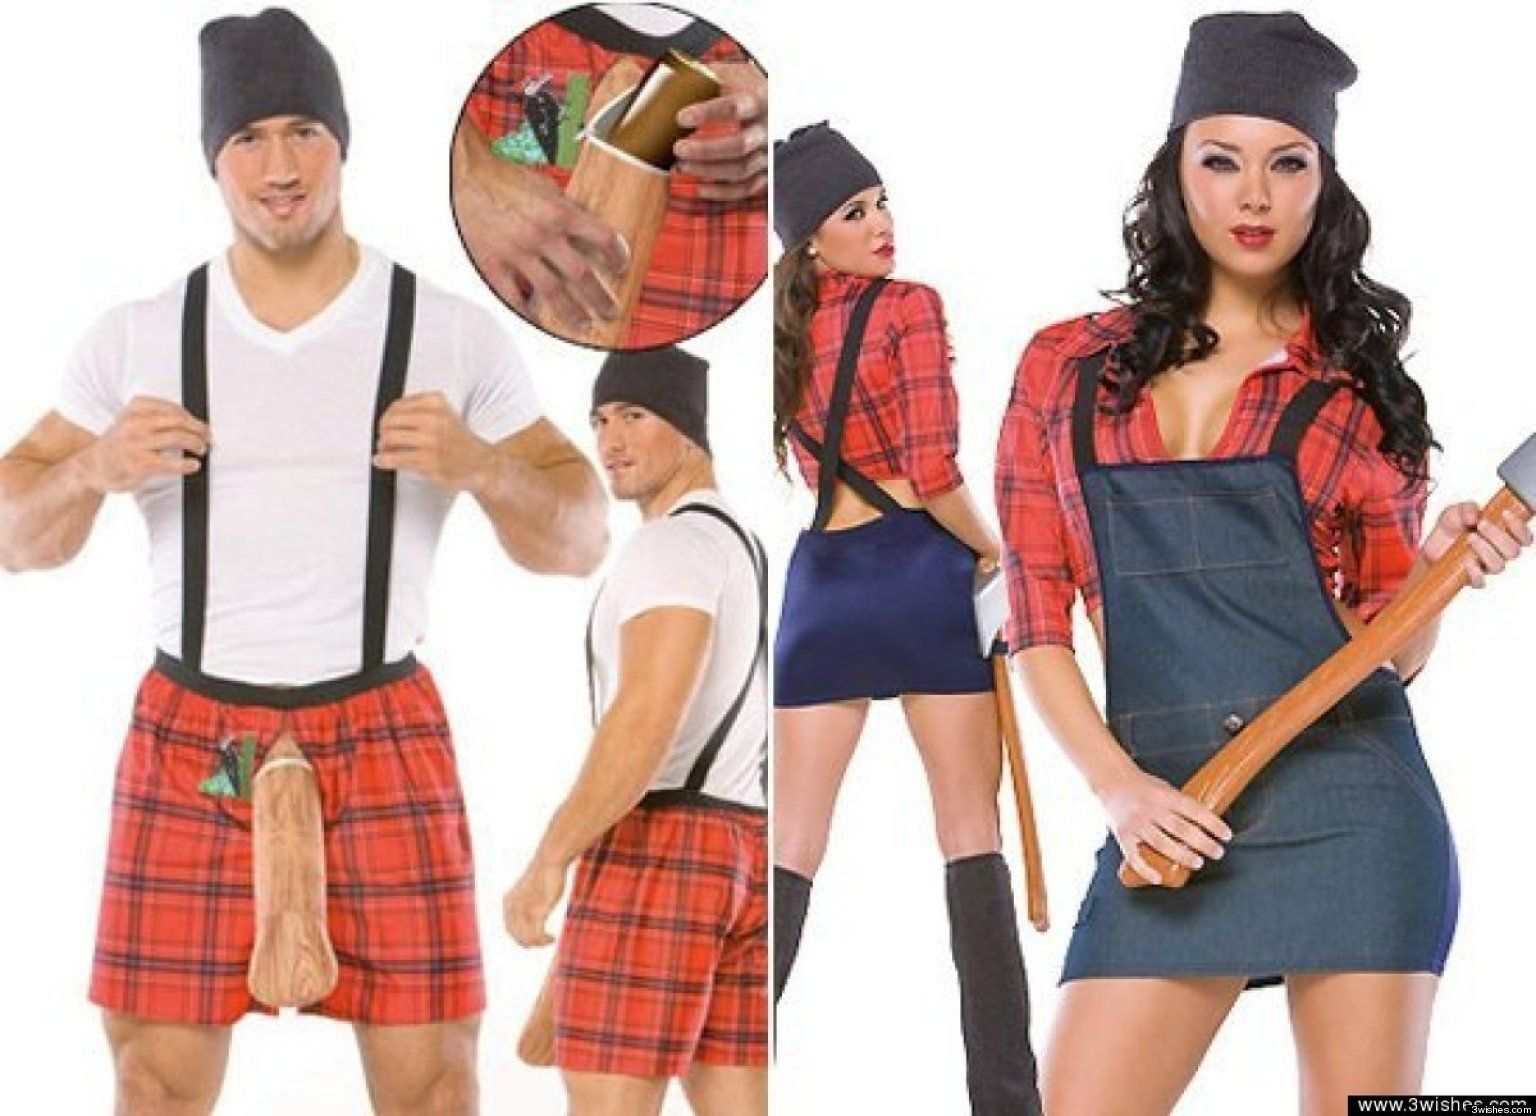 look 5 extremely awkward couples costumes costumes couple - Good Guys Halloween Costumes